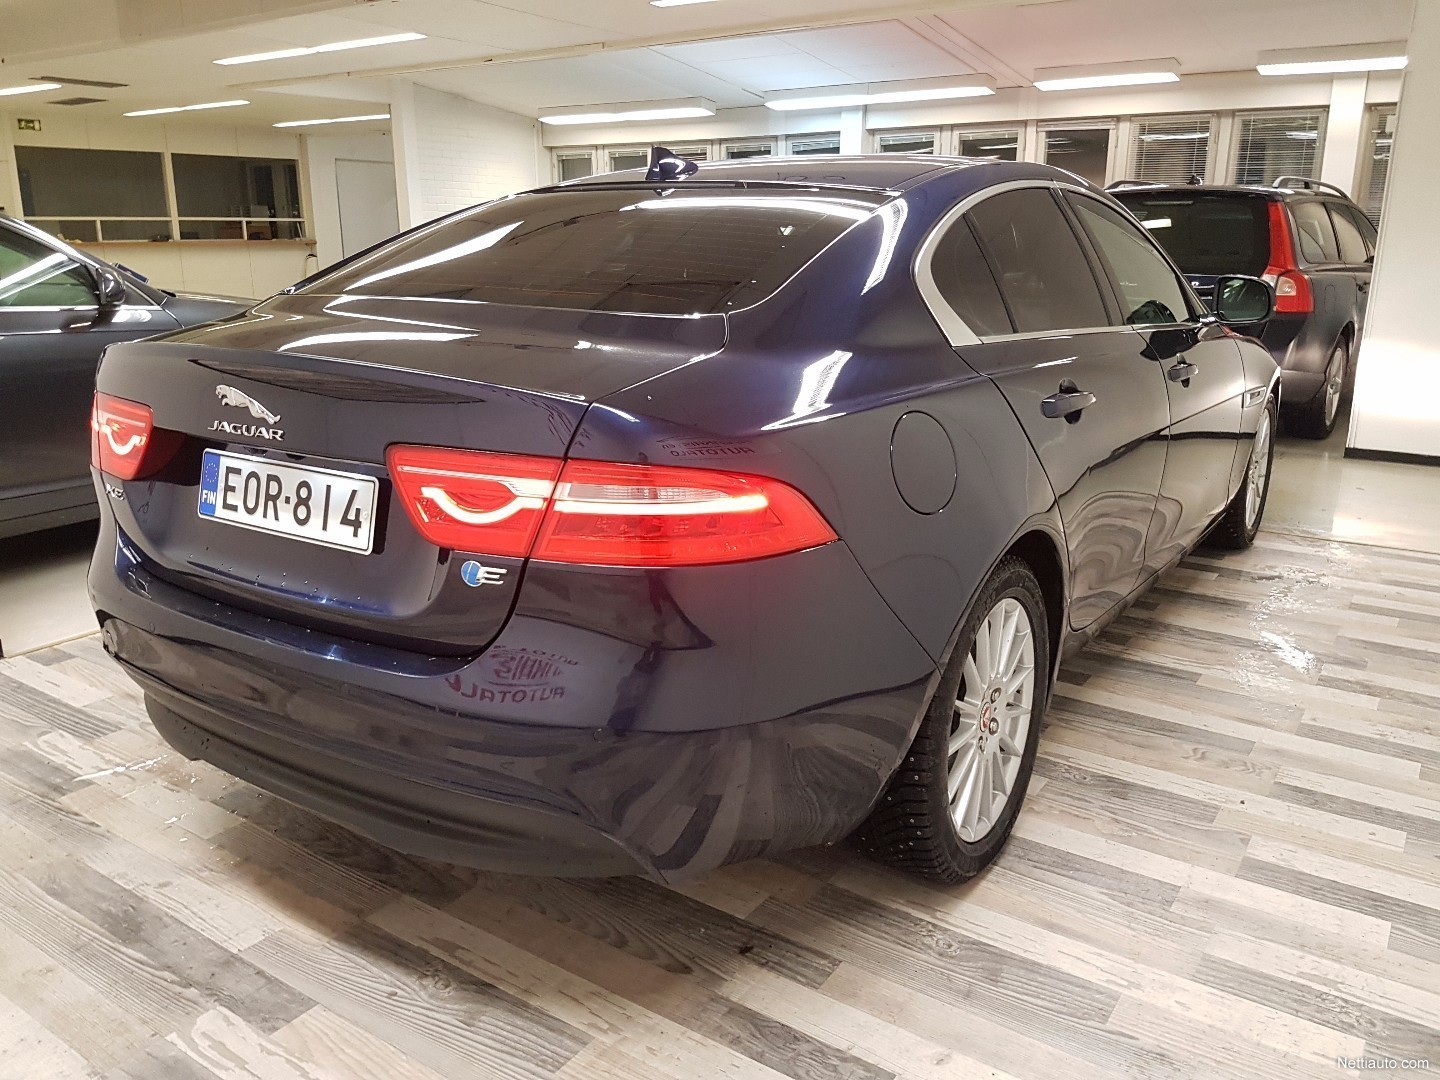 jaguar xe 20d prestige business aut sedan 2016 used vehicle nettiauto. Black Bedroom Furniture Sets. Home Design Ideas